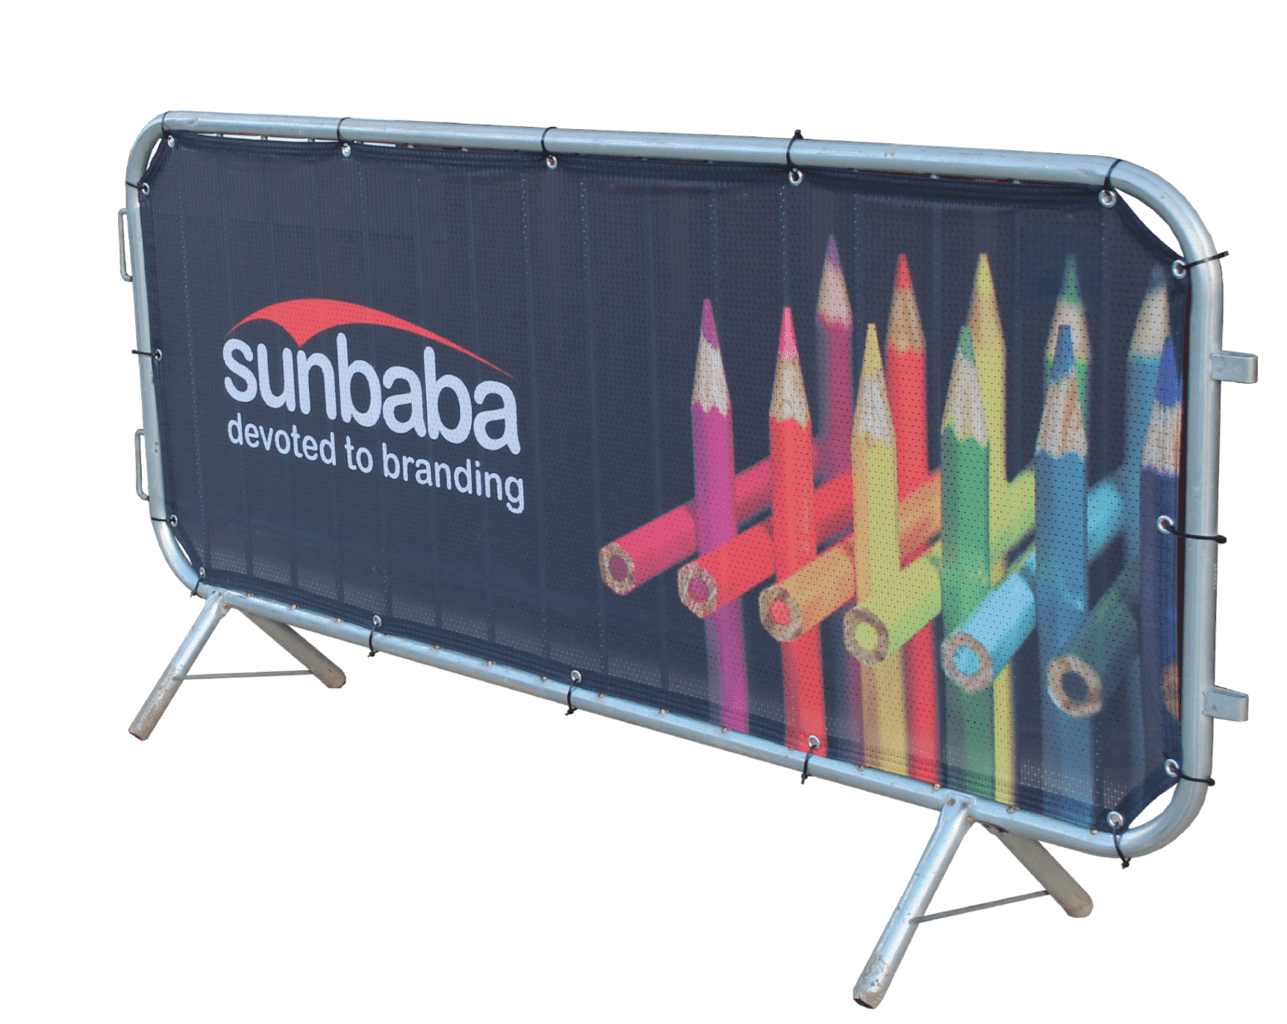 Sunbaba single-sided CCB